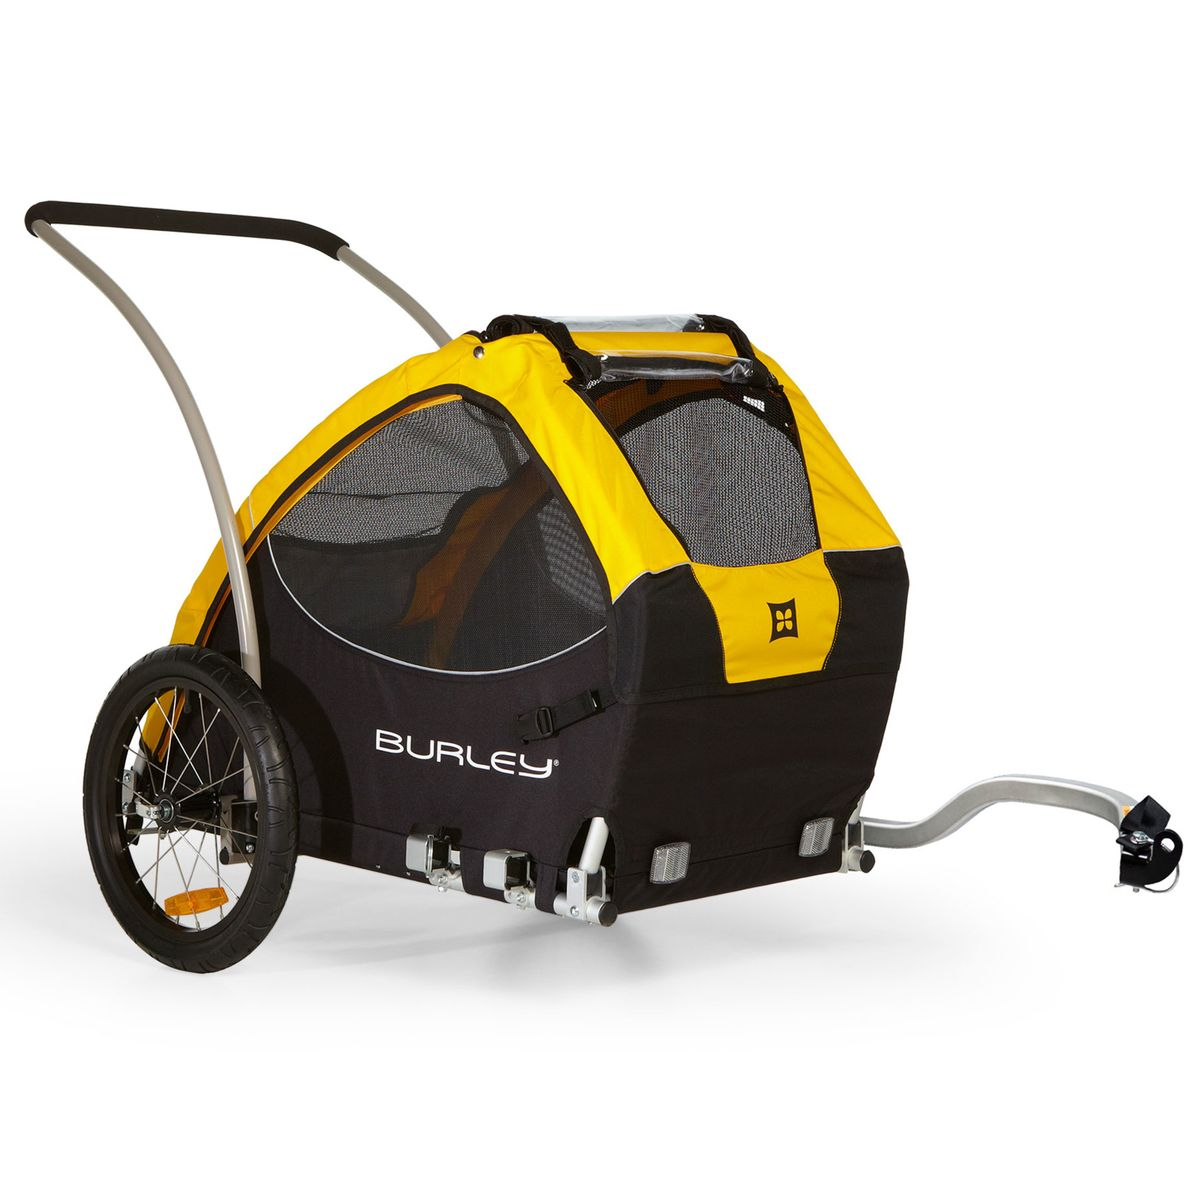 BURLEY TAIL WAGON bicycle trailer for dogs